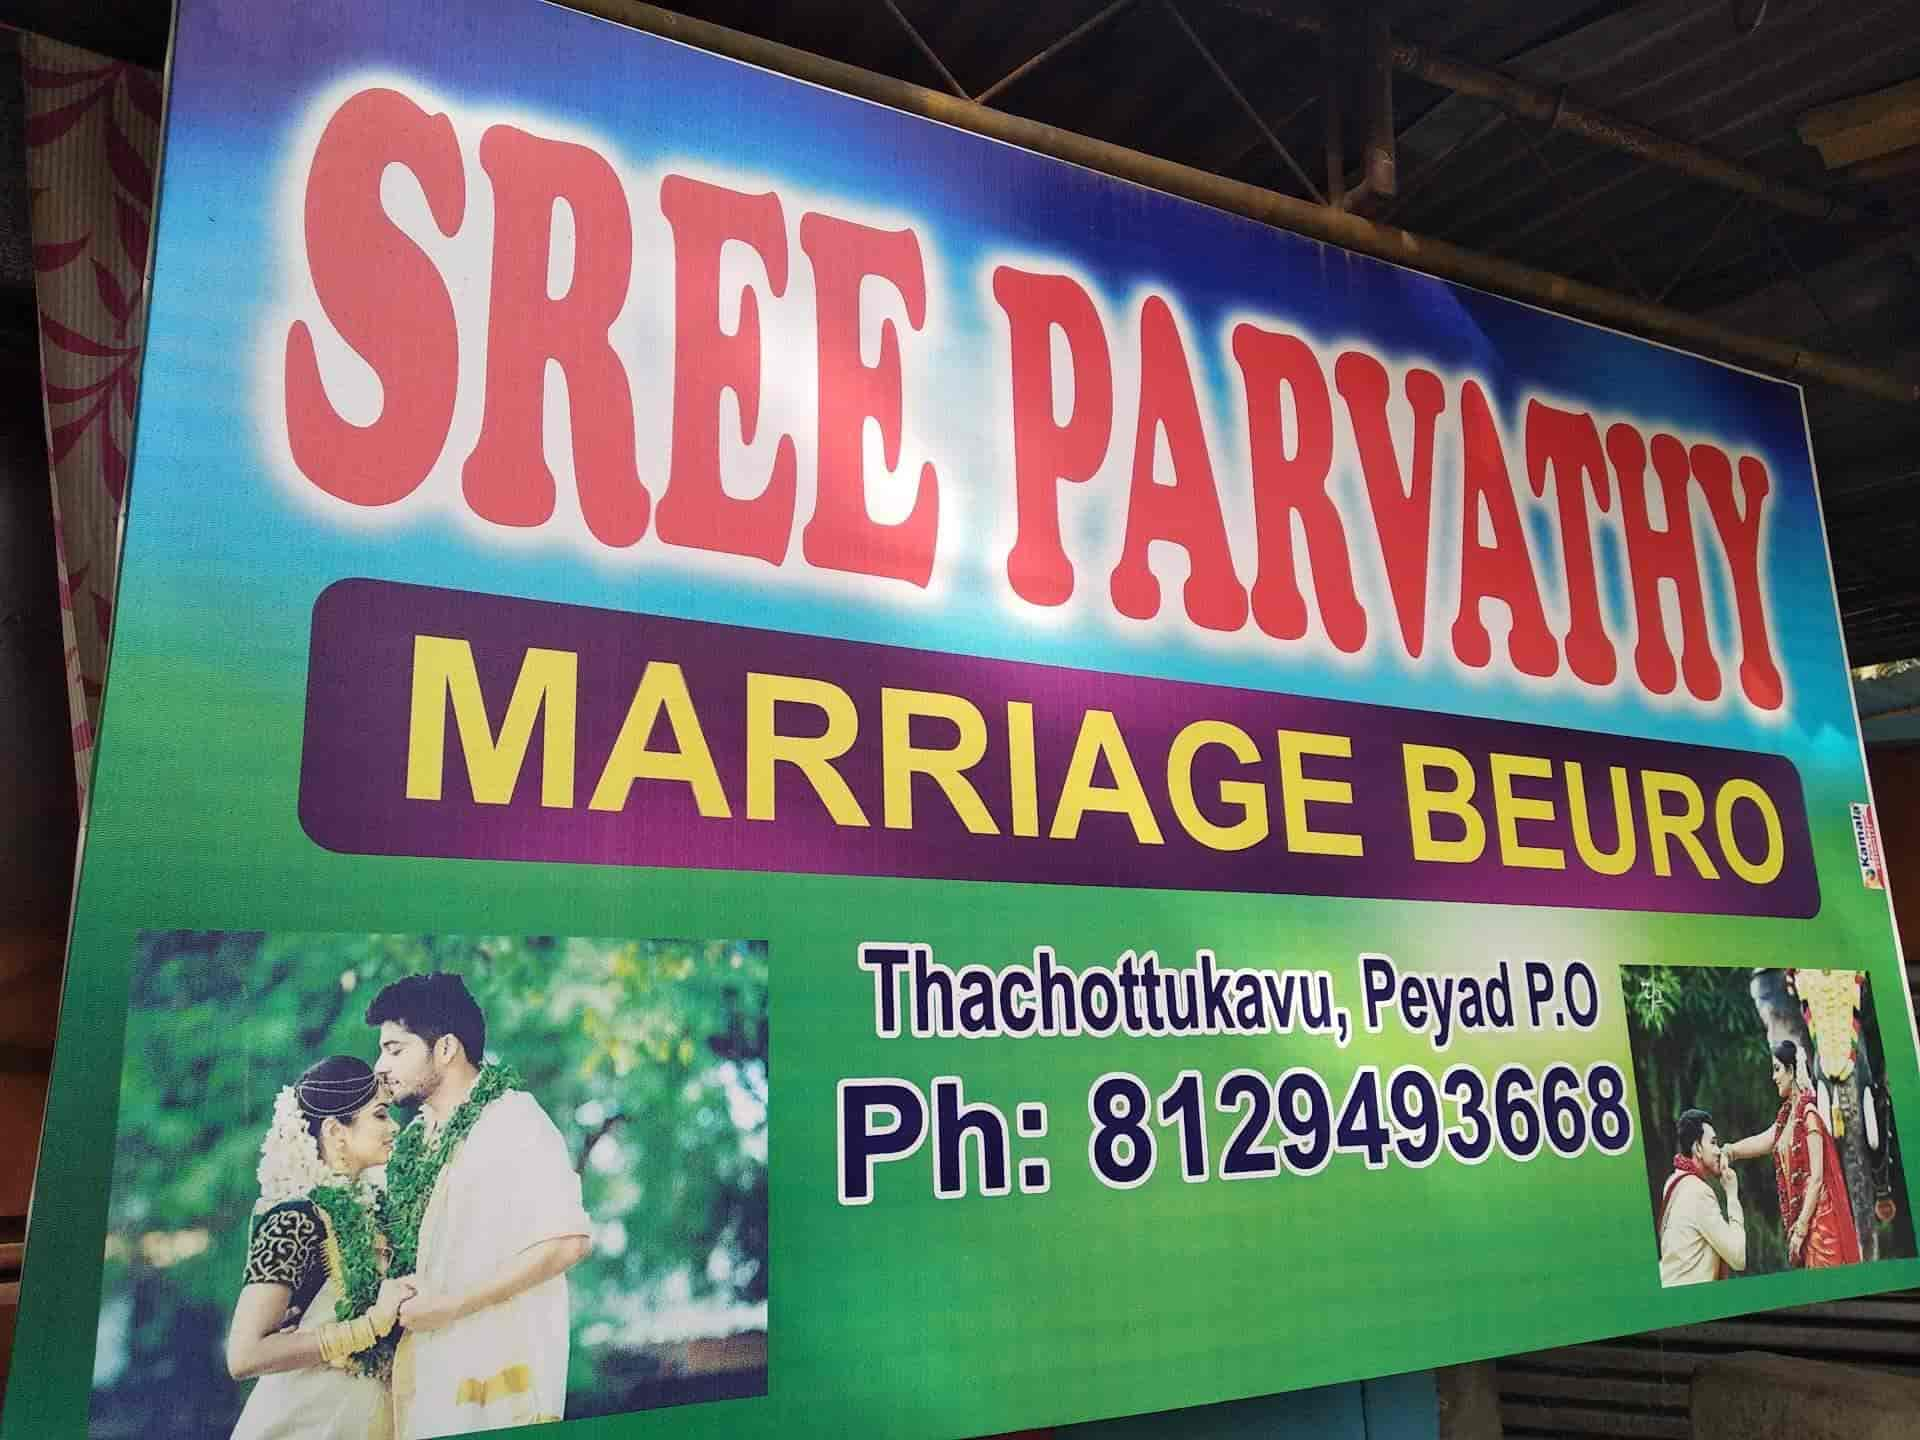 Marriage Beuro